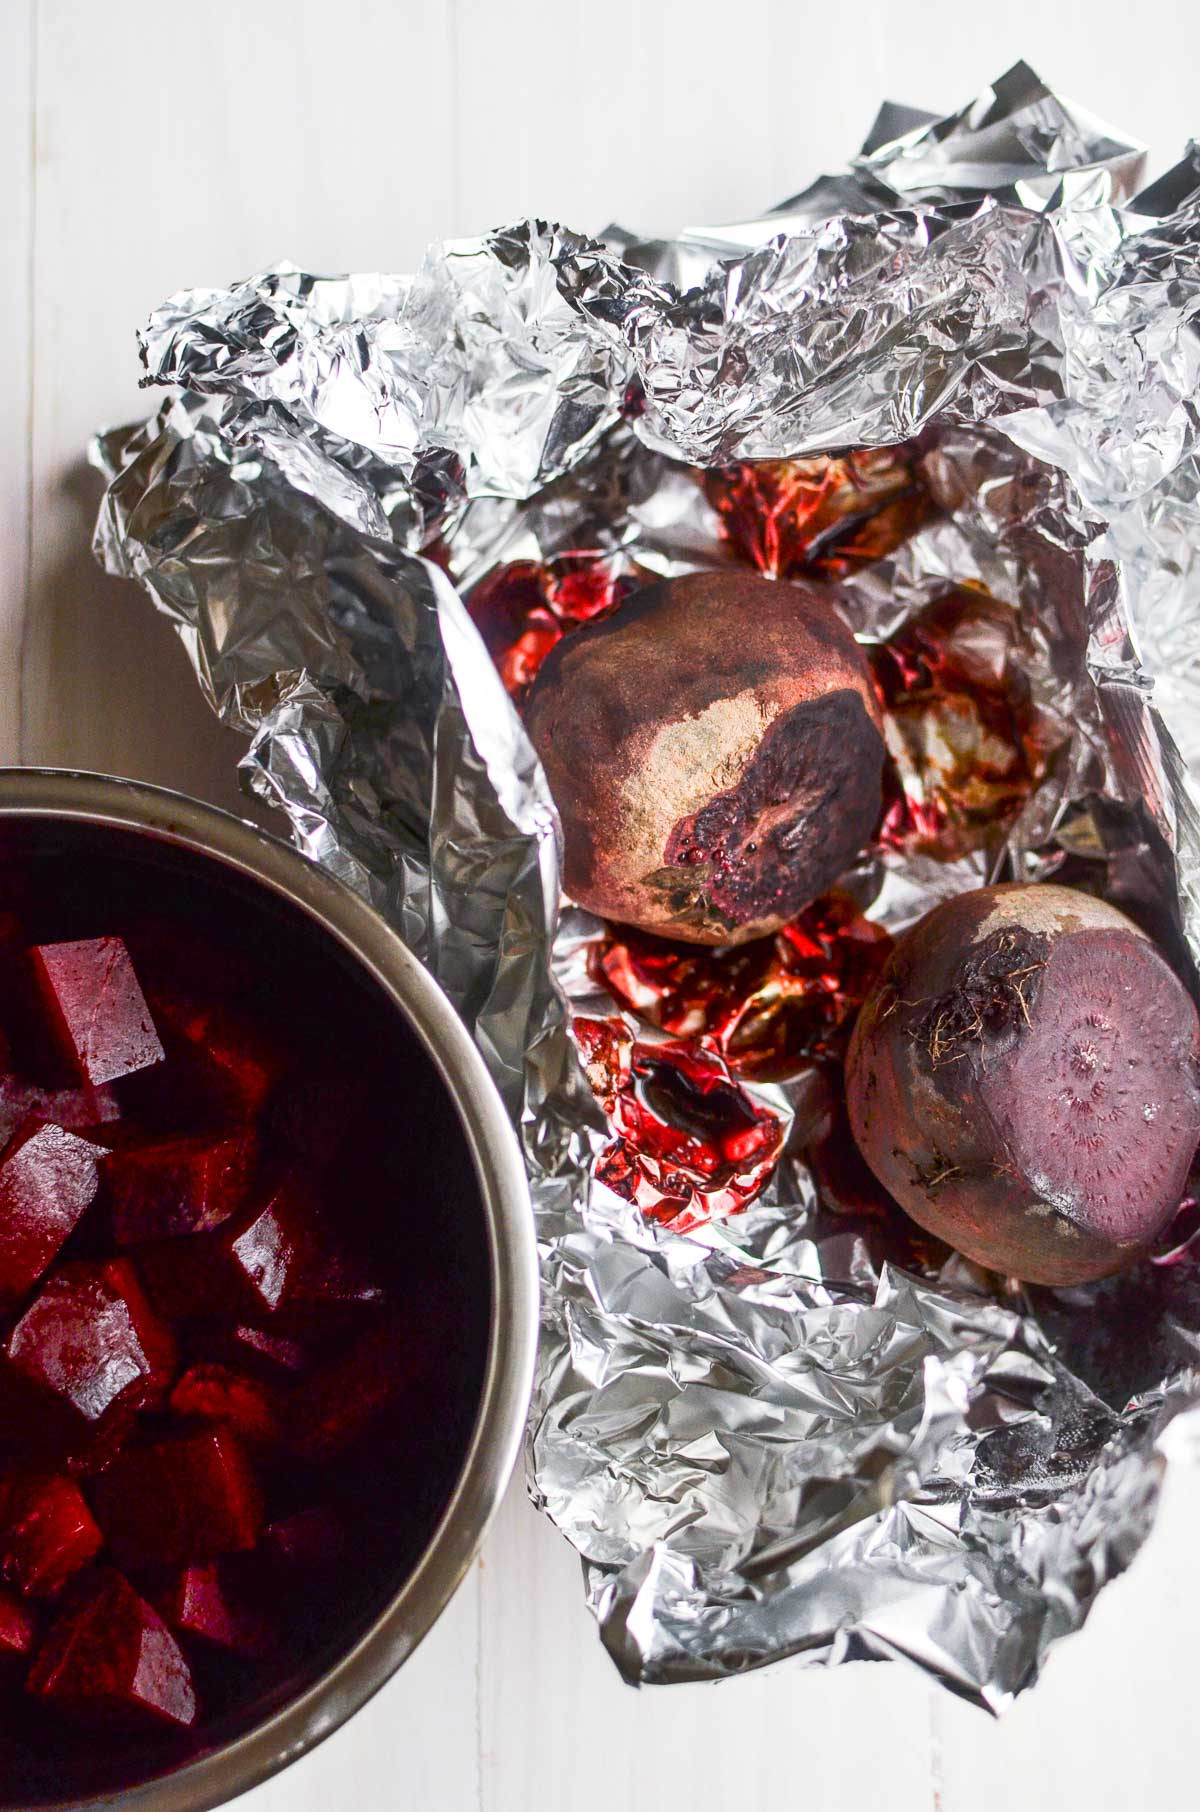 Roasted beets in tinfoil next to a small stainless steel bowl of chopped roasted beets.